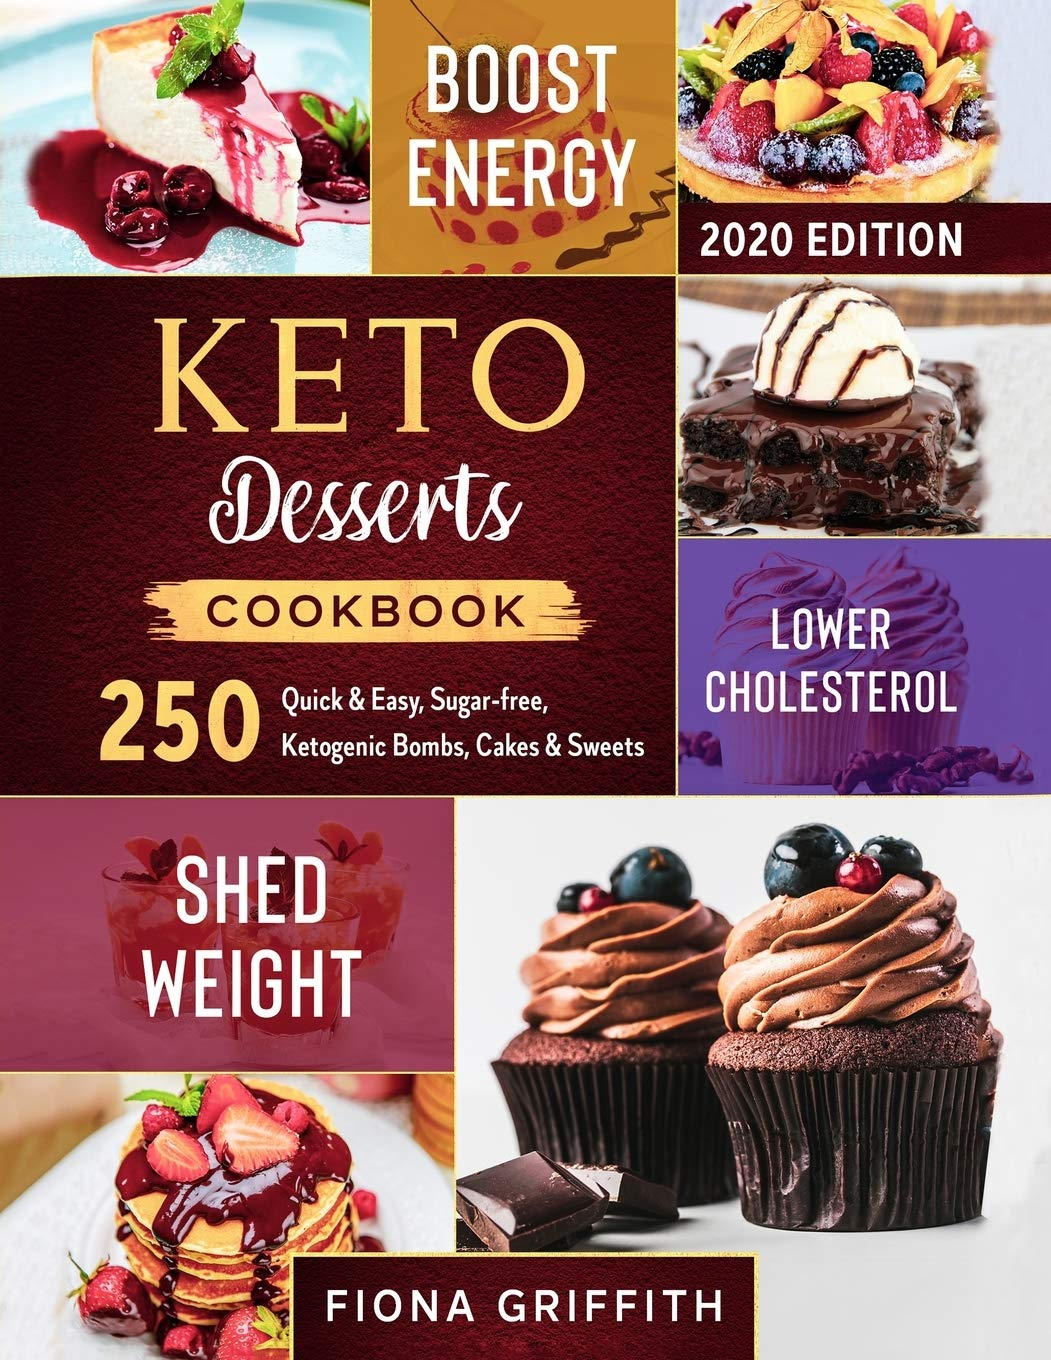 Keto Dessert Cookbook 2020: 250 Quick & Easy, Sugar-free, Ketogenic Bombs, Cakes & Sweets to Shed Weight, Lower Cholesterol & Boost Energy pdf epub